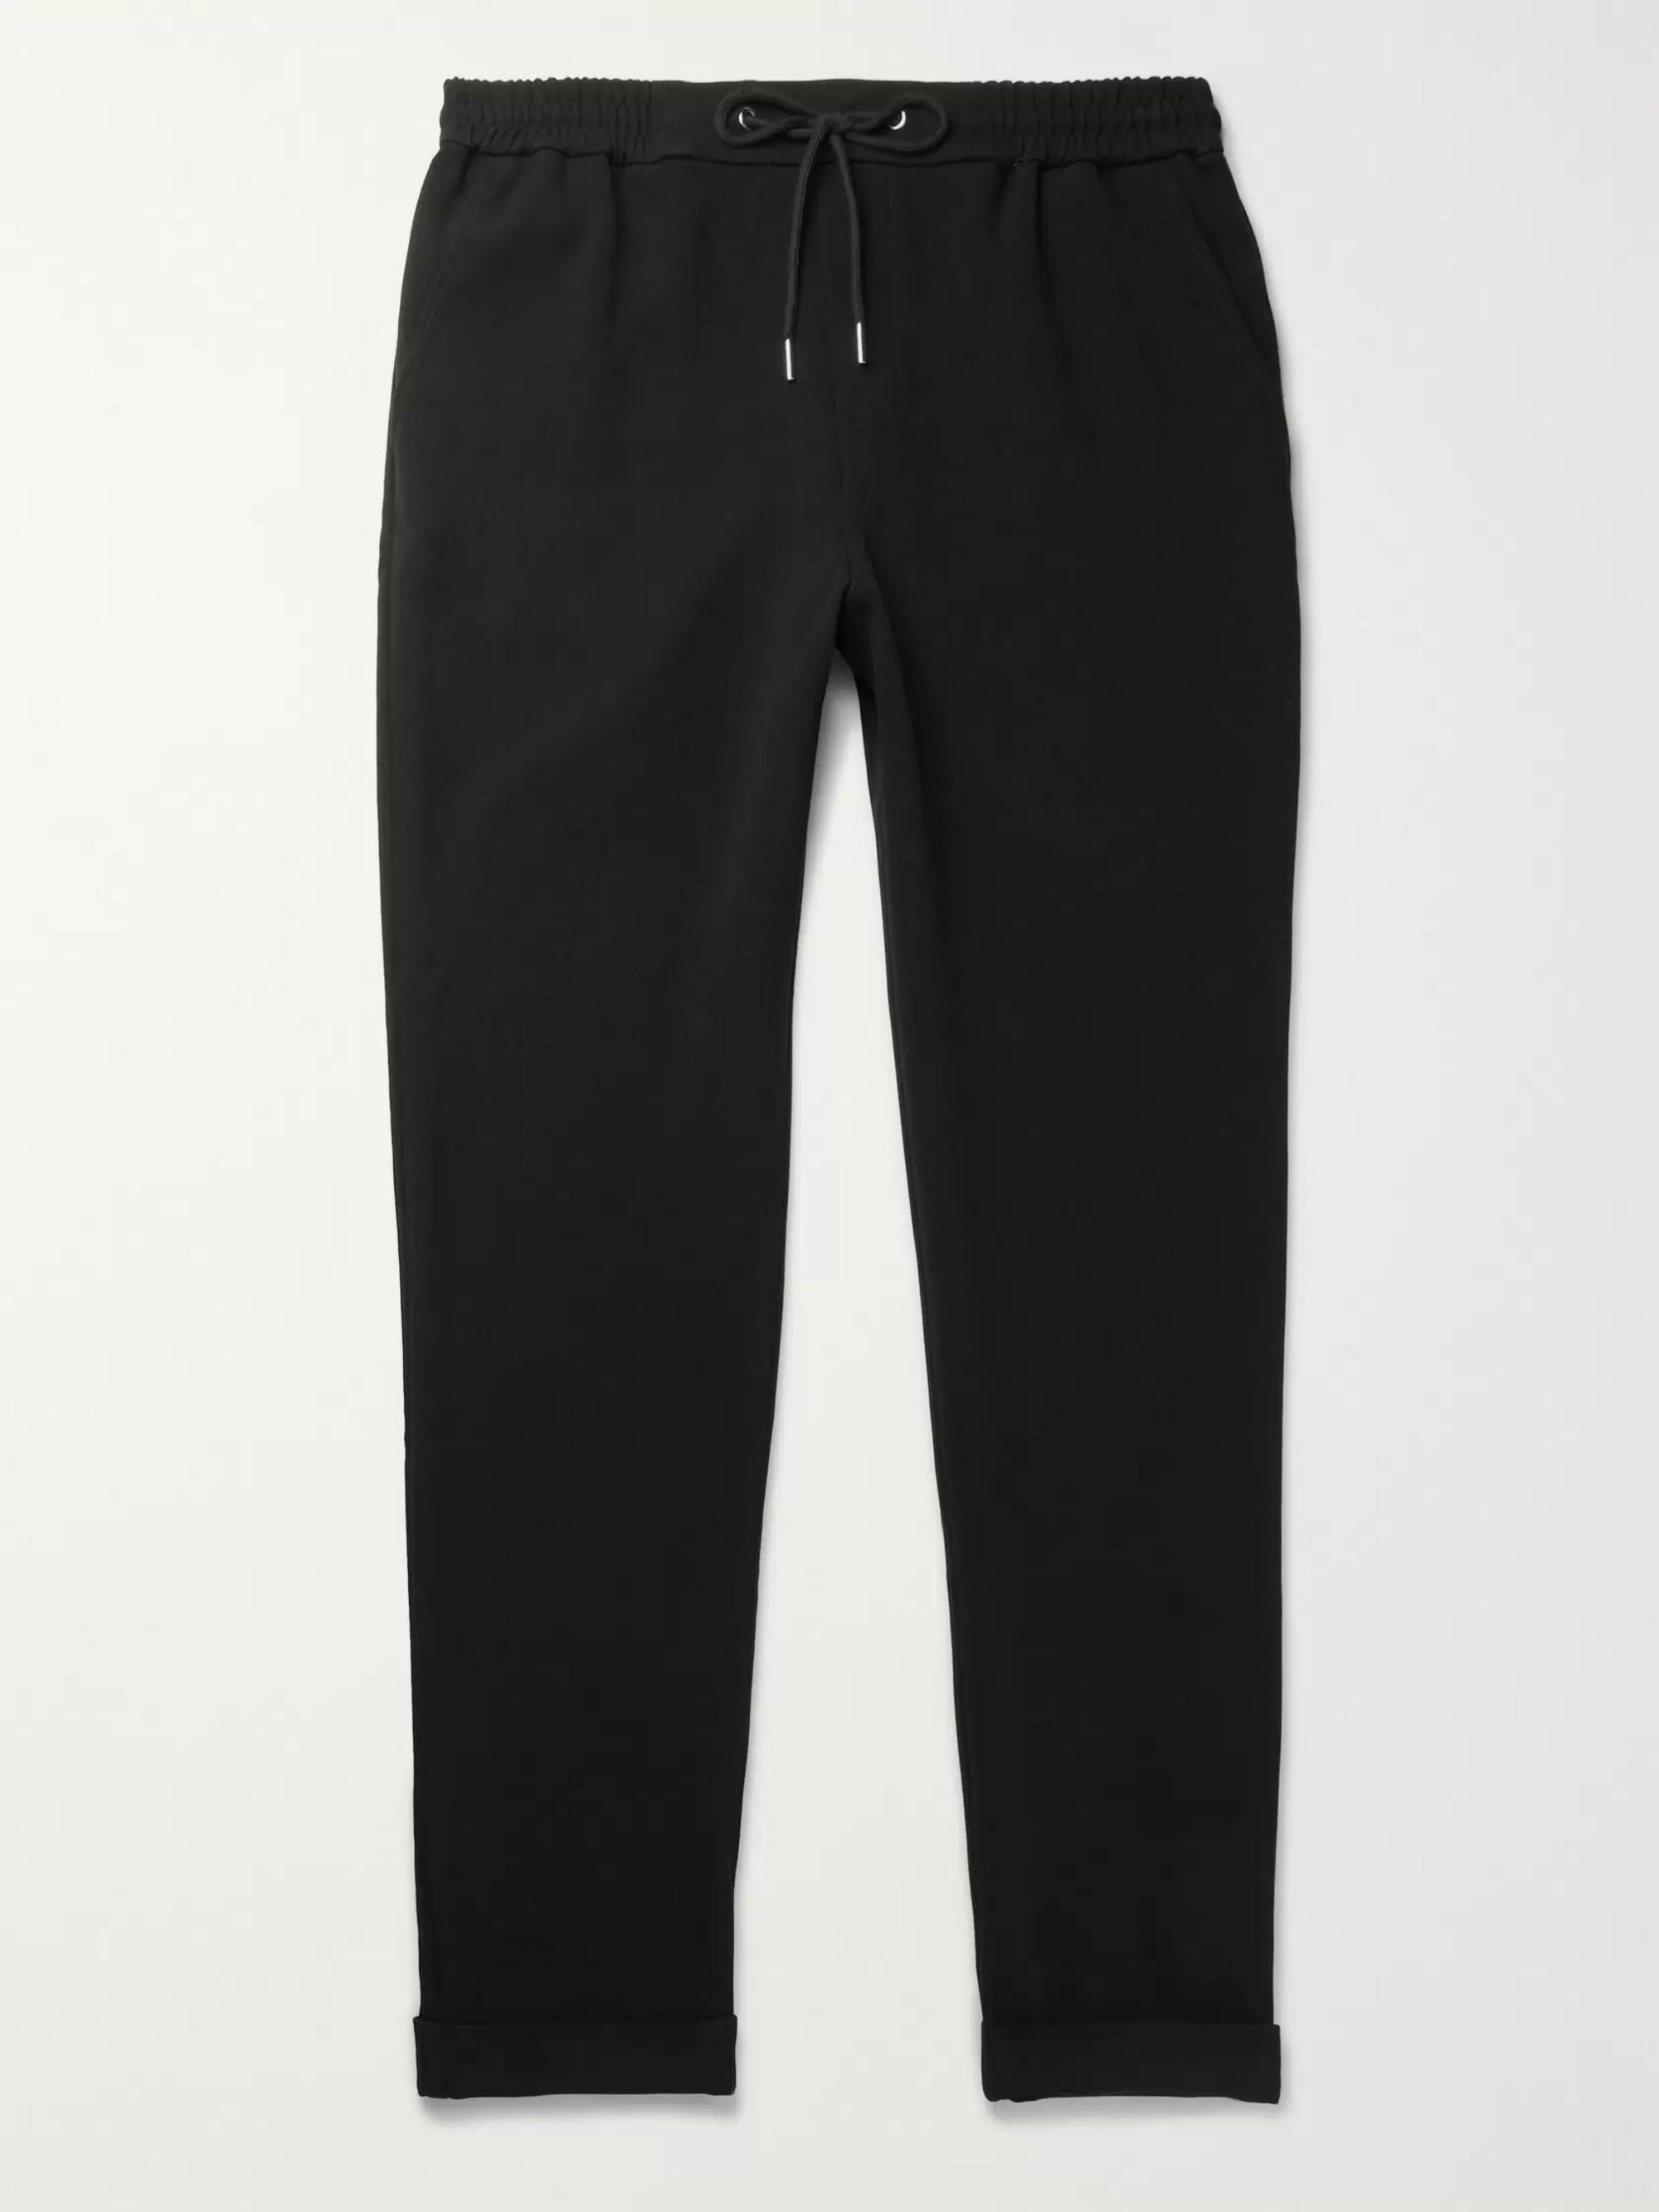 FRAME Black Slim-Fit Jersey Drawstring Trousers